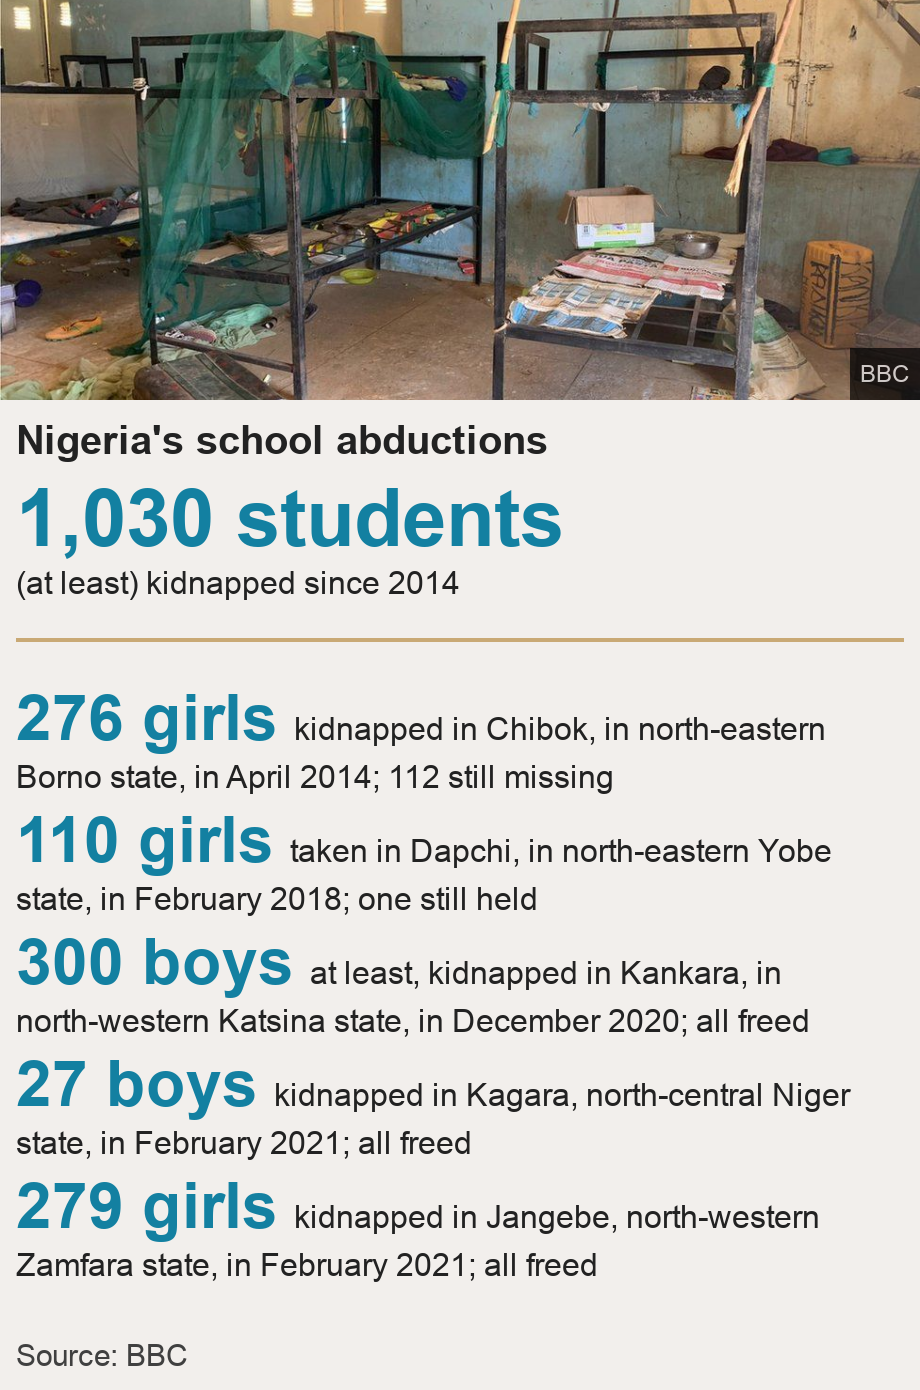 Nigeria's school abductions.  [ 1,030 students  (at least) kidnapped since 2014 ] [ 276 girls kidnapped in Chibok, in north-eastern Borno state, in April 2014; 112 still missing ],[ 110 girls taken in Dapchi, in north-eastern Yobe state, in February 2018; one still held ],[ 300 boys at least, kidnapped in Kankara, in north-western Katsina state, in December 2020; all freed ],[ 27 boys kidnapped in Kagara, north-central Niger state, in February 2021; all freed ],[ 279 girls kidnapped in Jangebe, north-western Zamfara state, in February 2021; all freed ], Source: Source: BBC, Image: An abandoned bunker bed in Kankara school